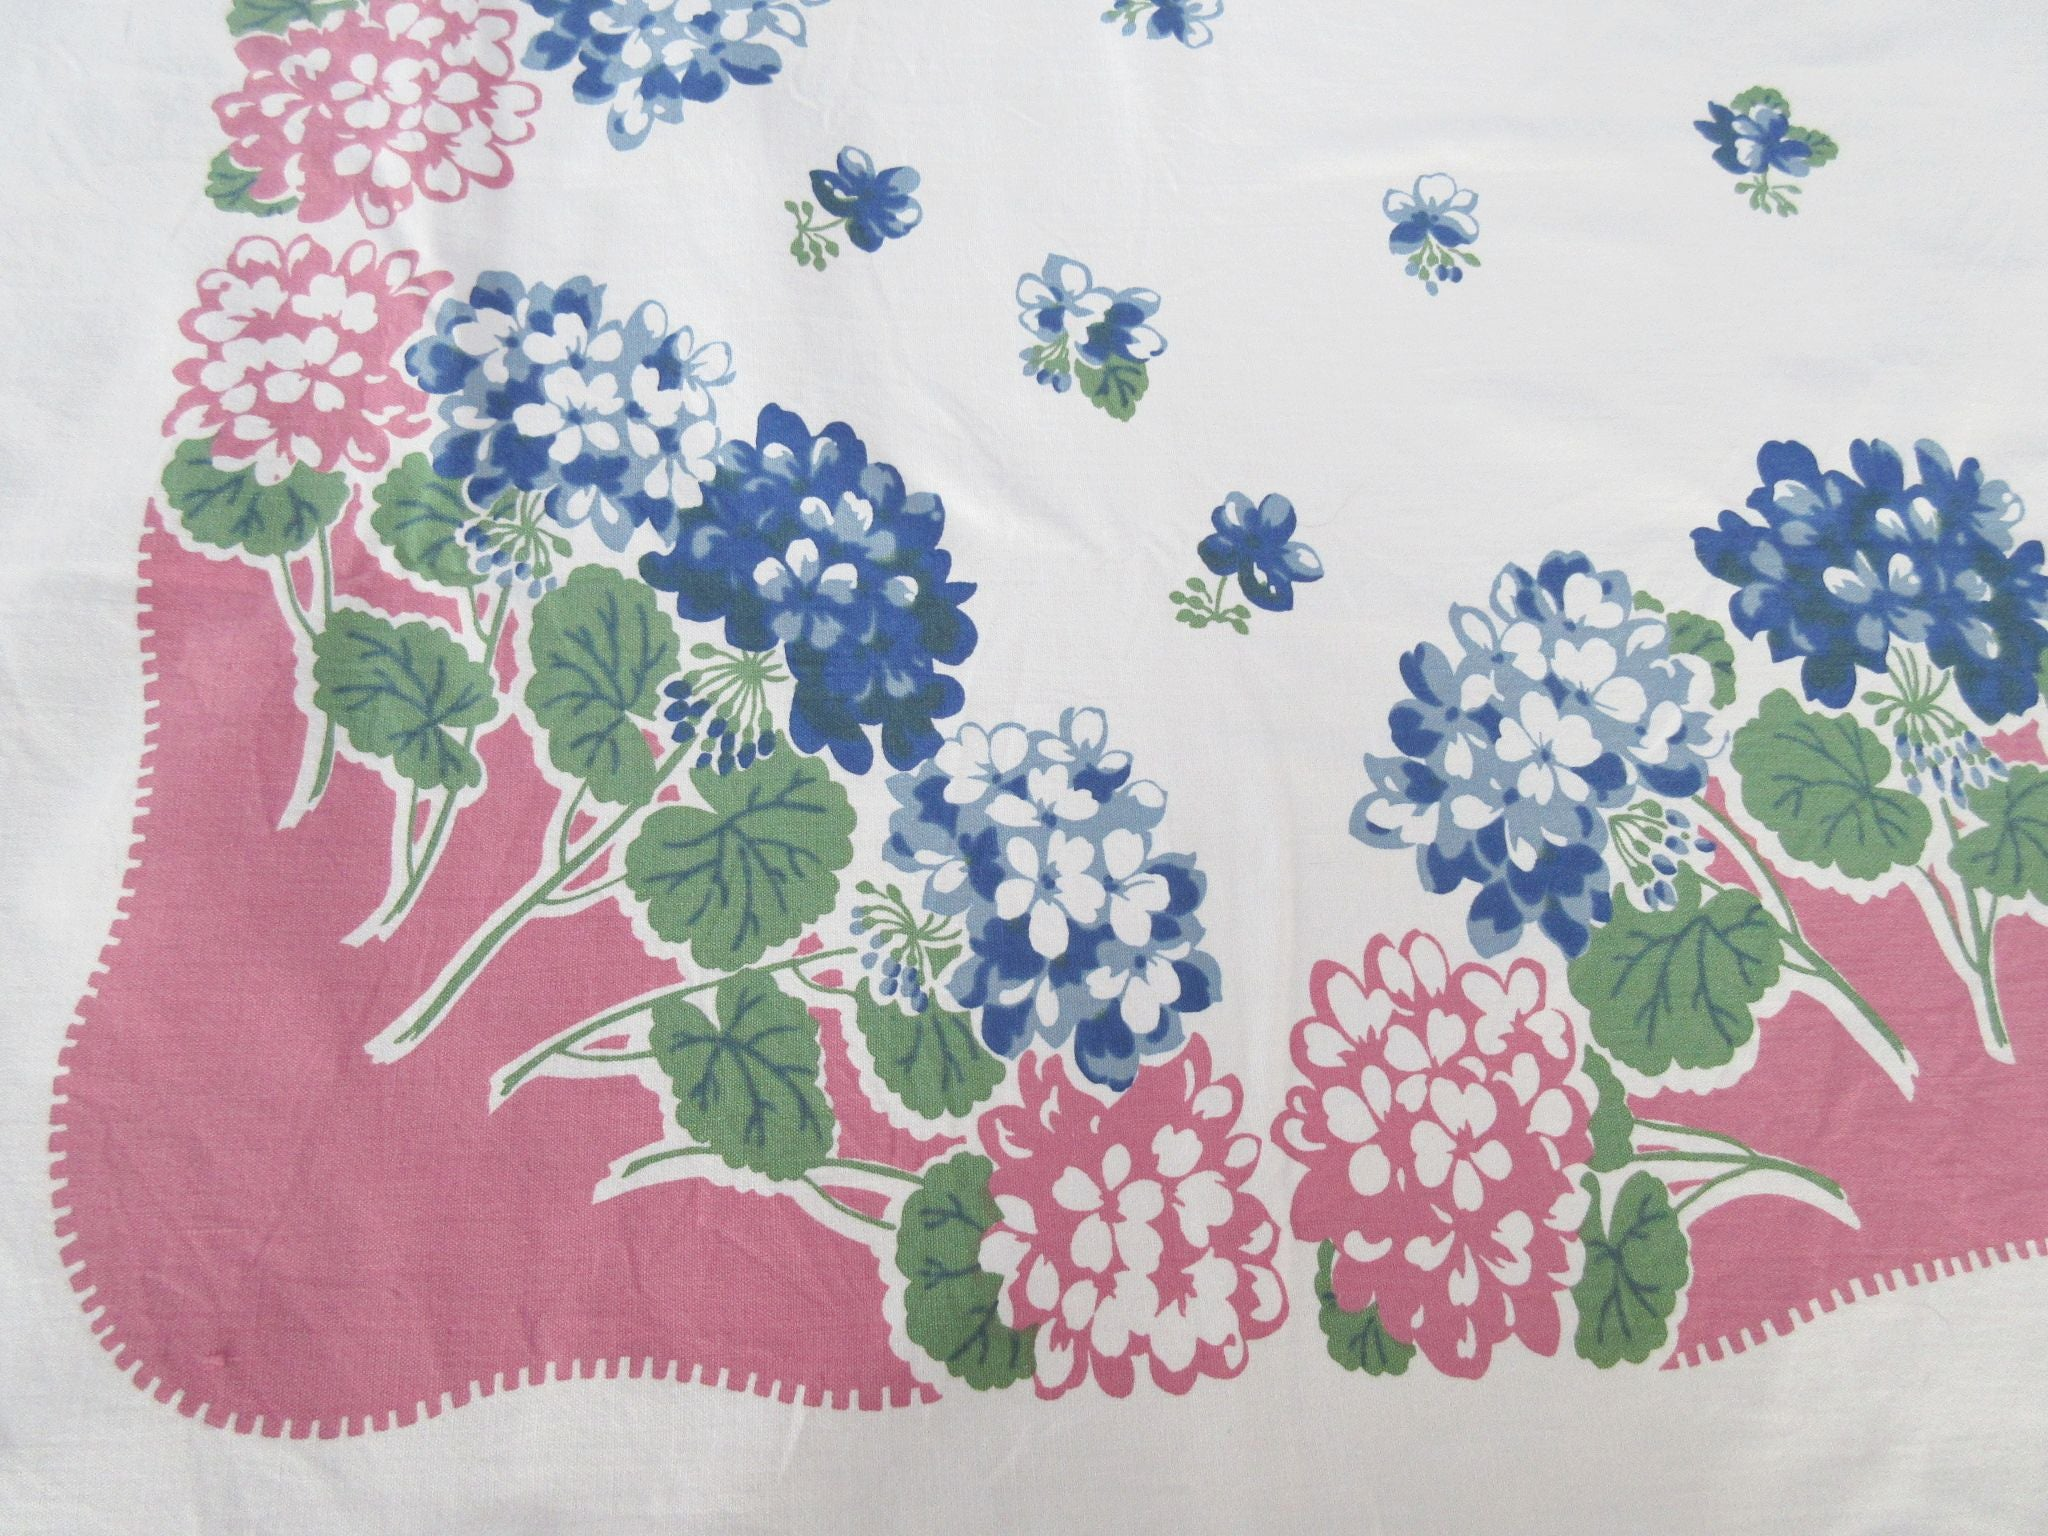 Larger Blue Pink Hydrangeas on Pink Floral Vintage Printed Tablecloth (63 X 52)